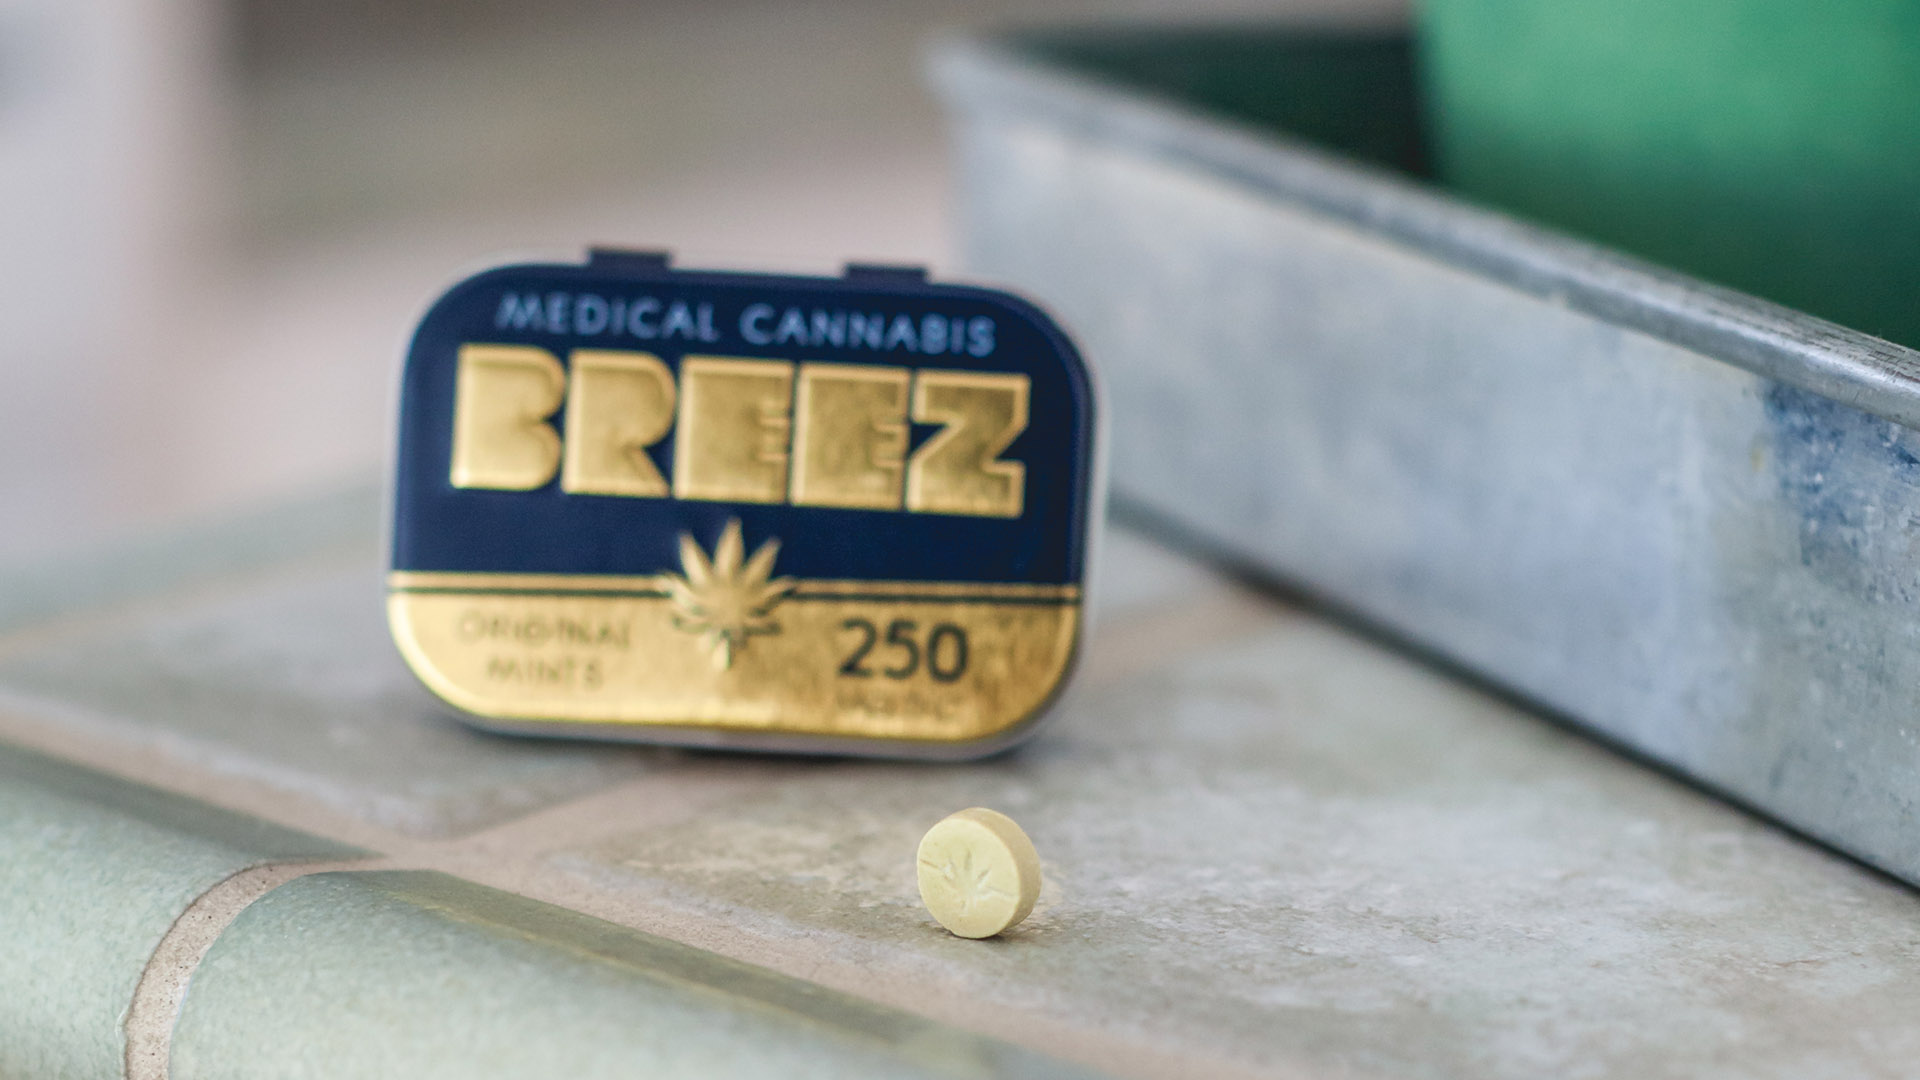 image of breez marijuana mints